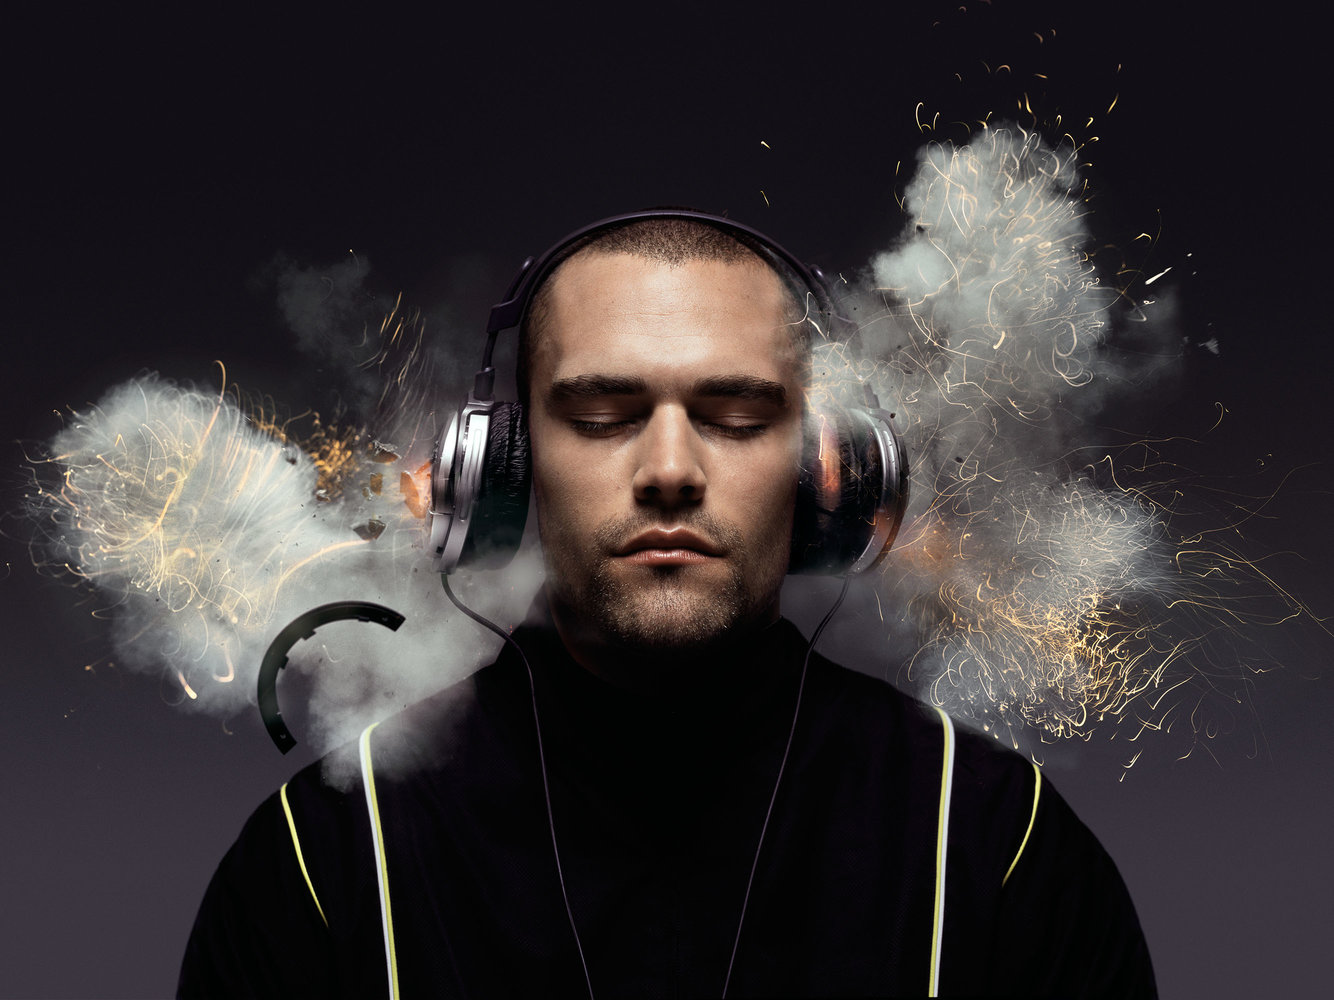 Exploding headphones